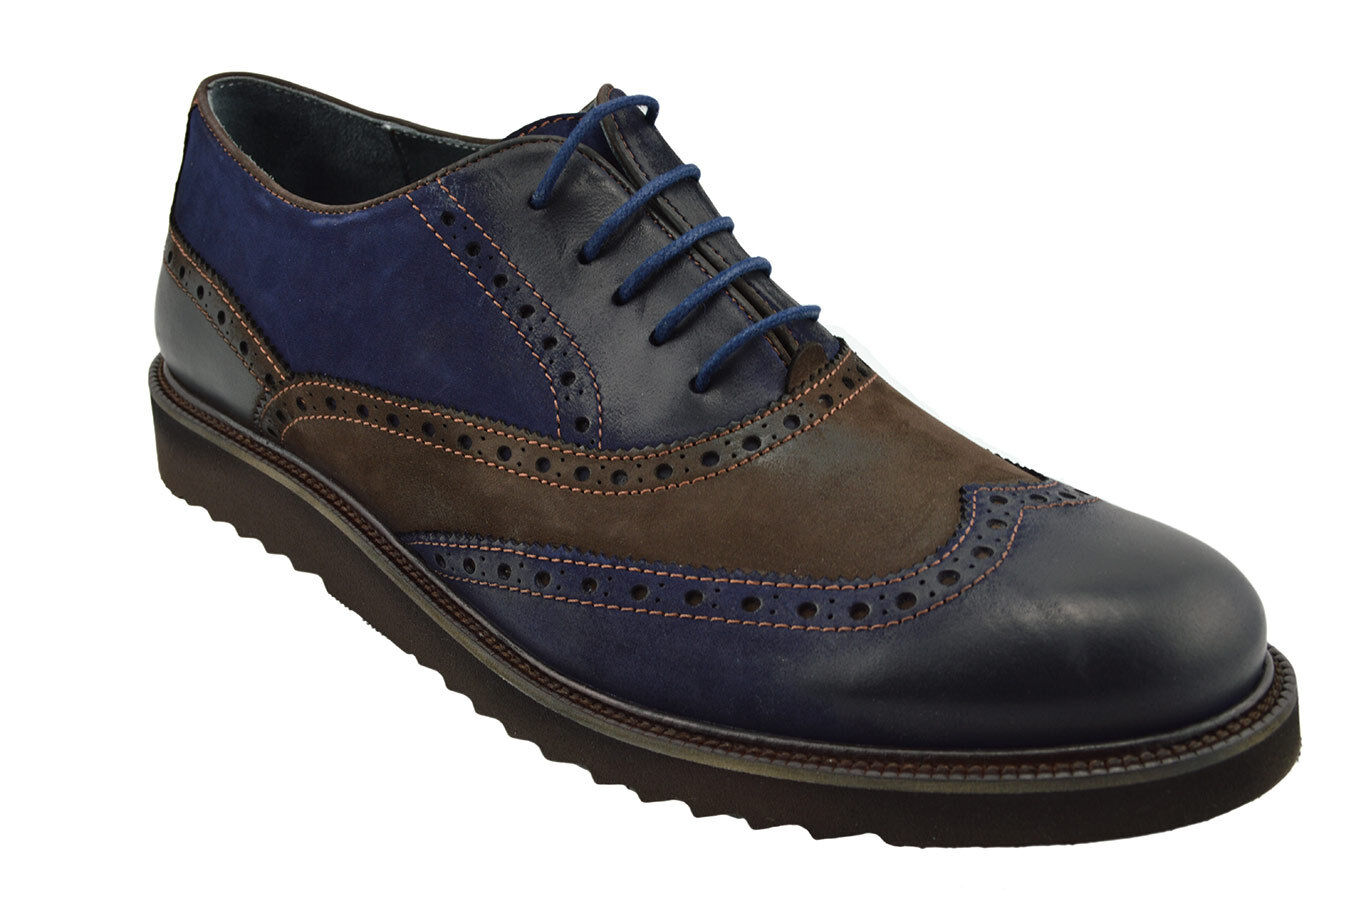 230 MASQLEN Blue Brown WING TIP Lace Up Oxfords Suede Pelle Dress Uomo Shoes